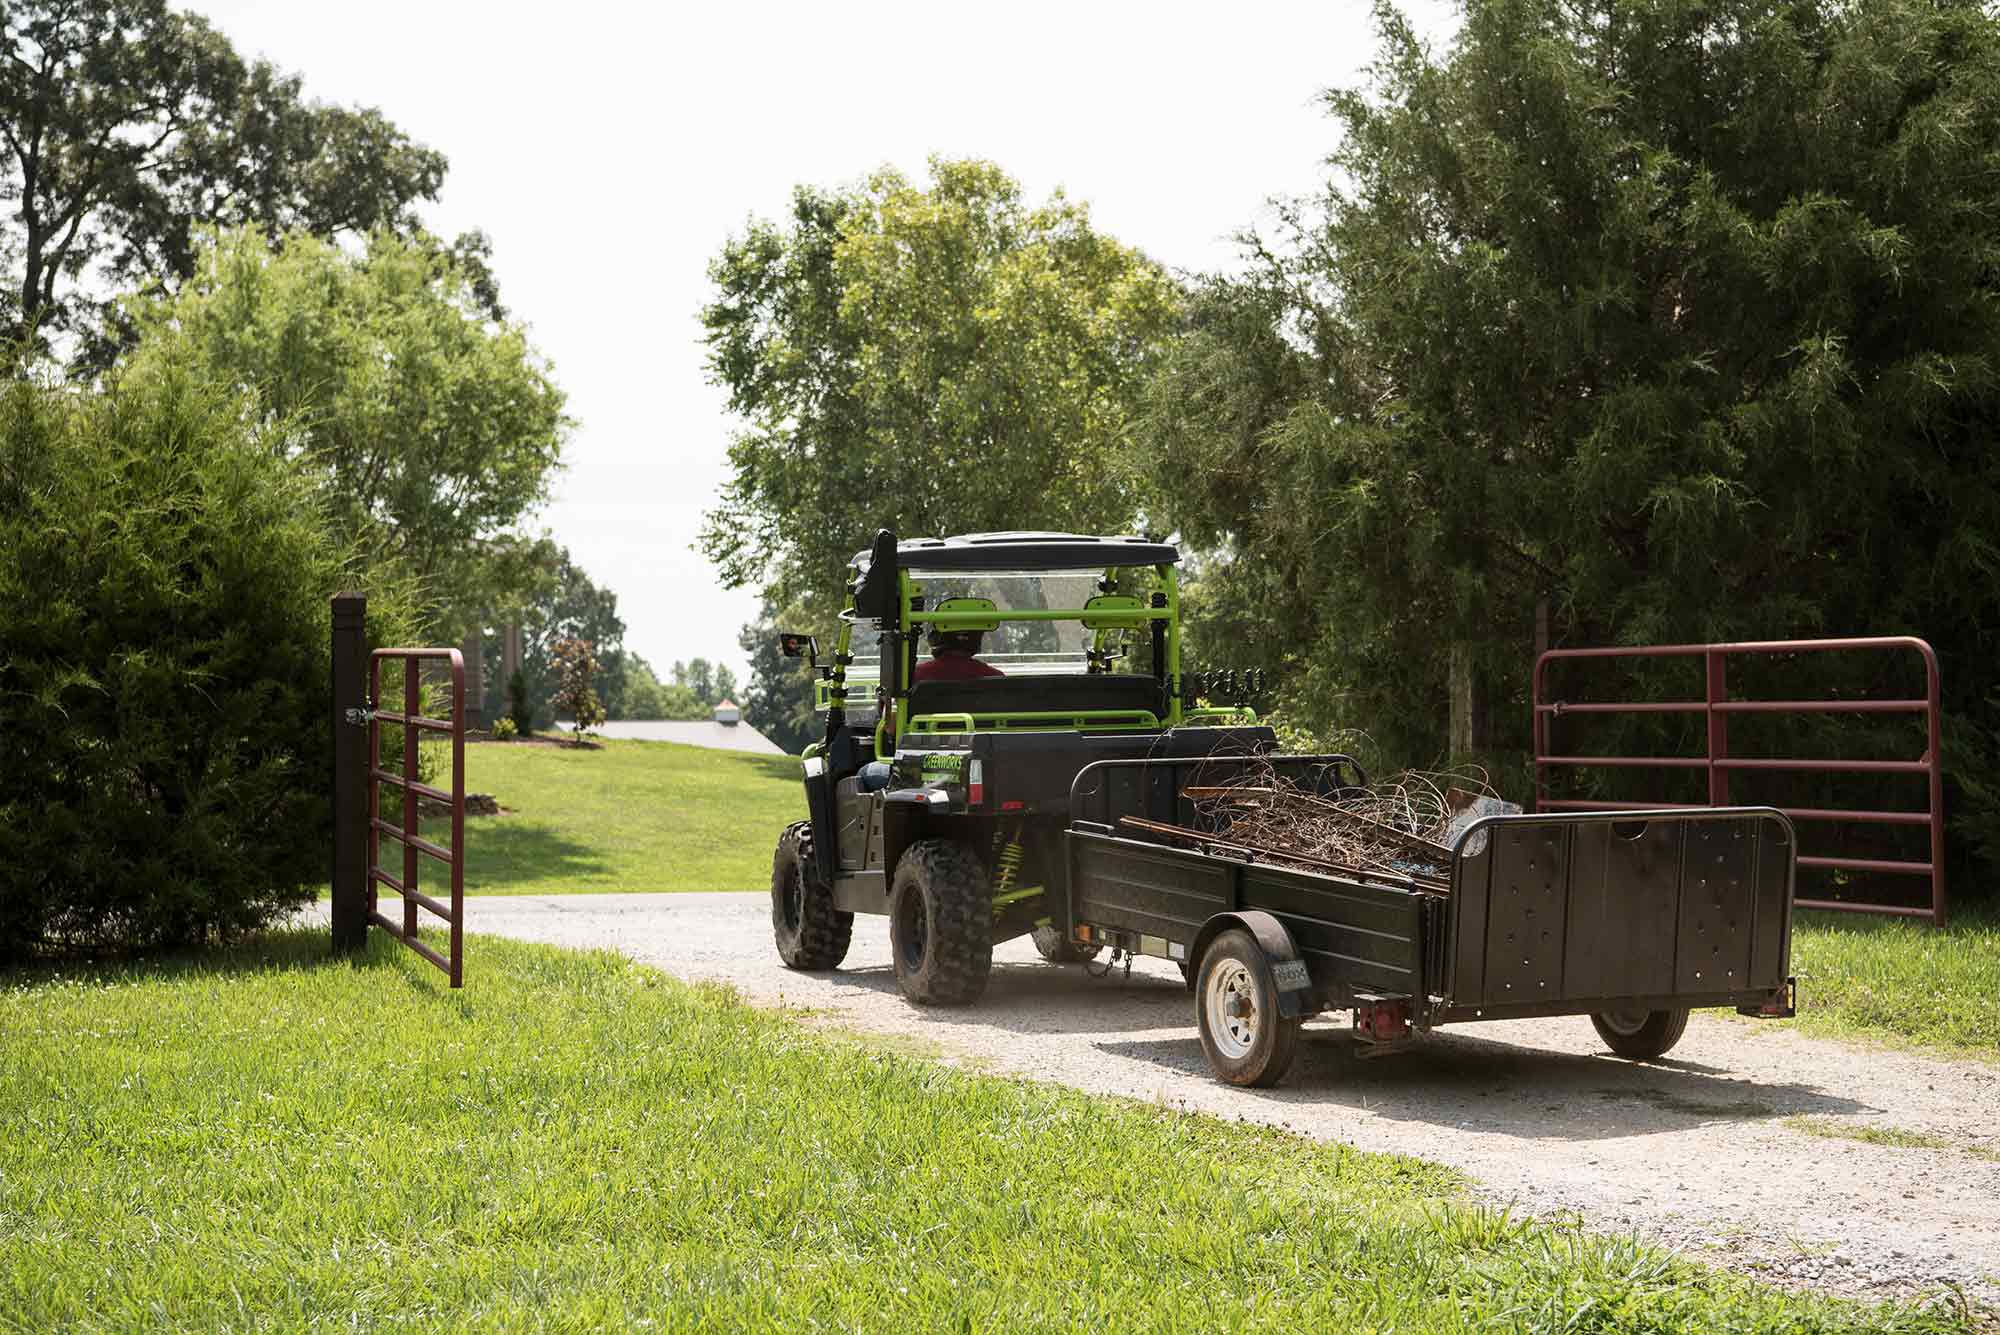 The Greenworks U800 can tow an impressive 1,500 pounds.